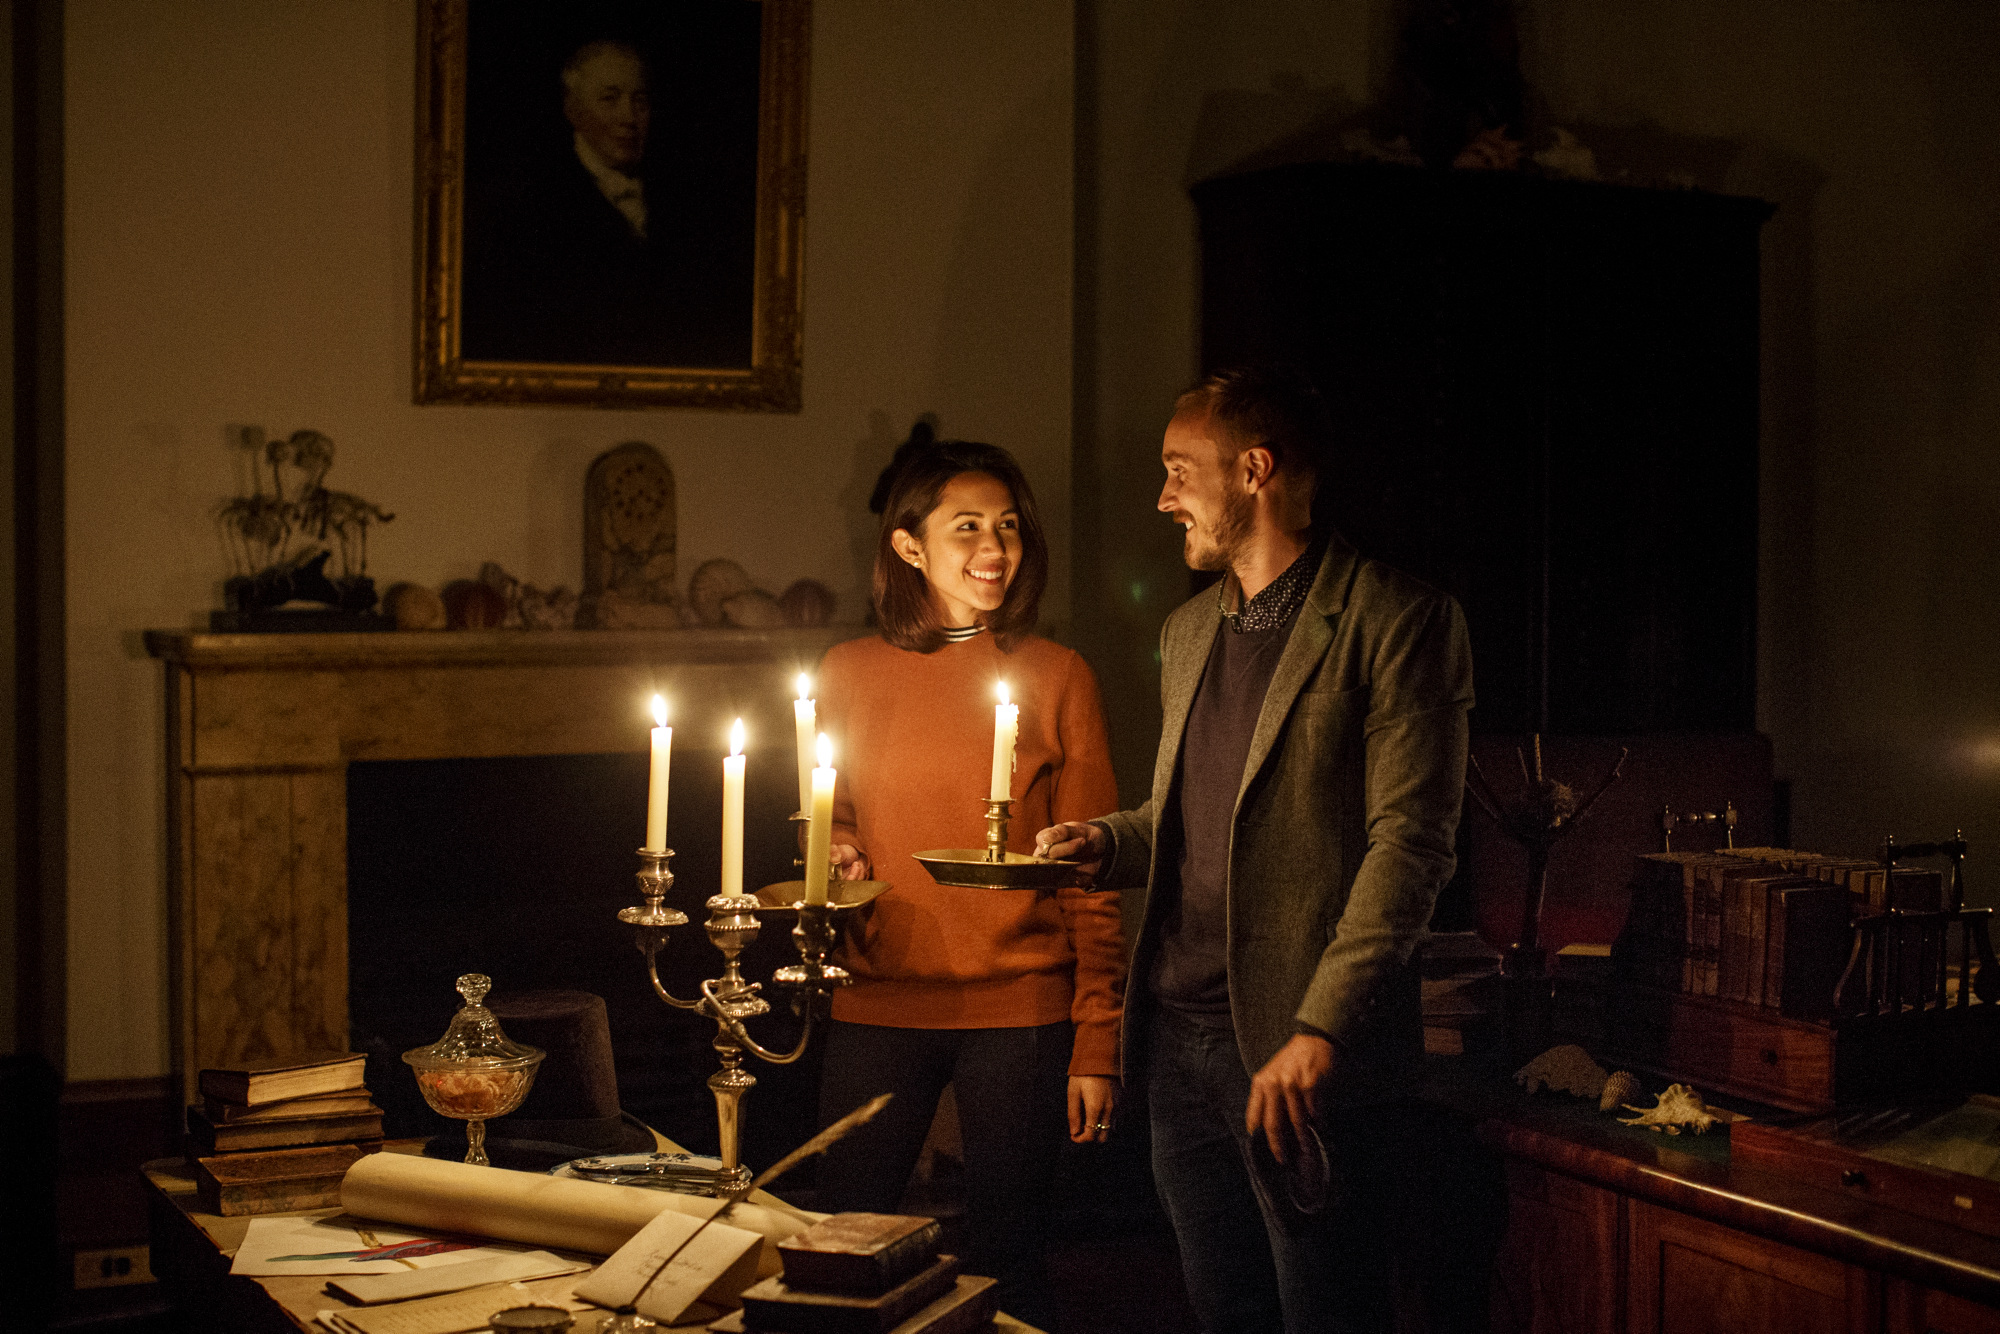 Man and woman in darkened room with candles lighting space.